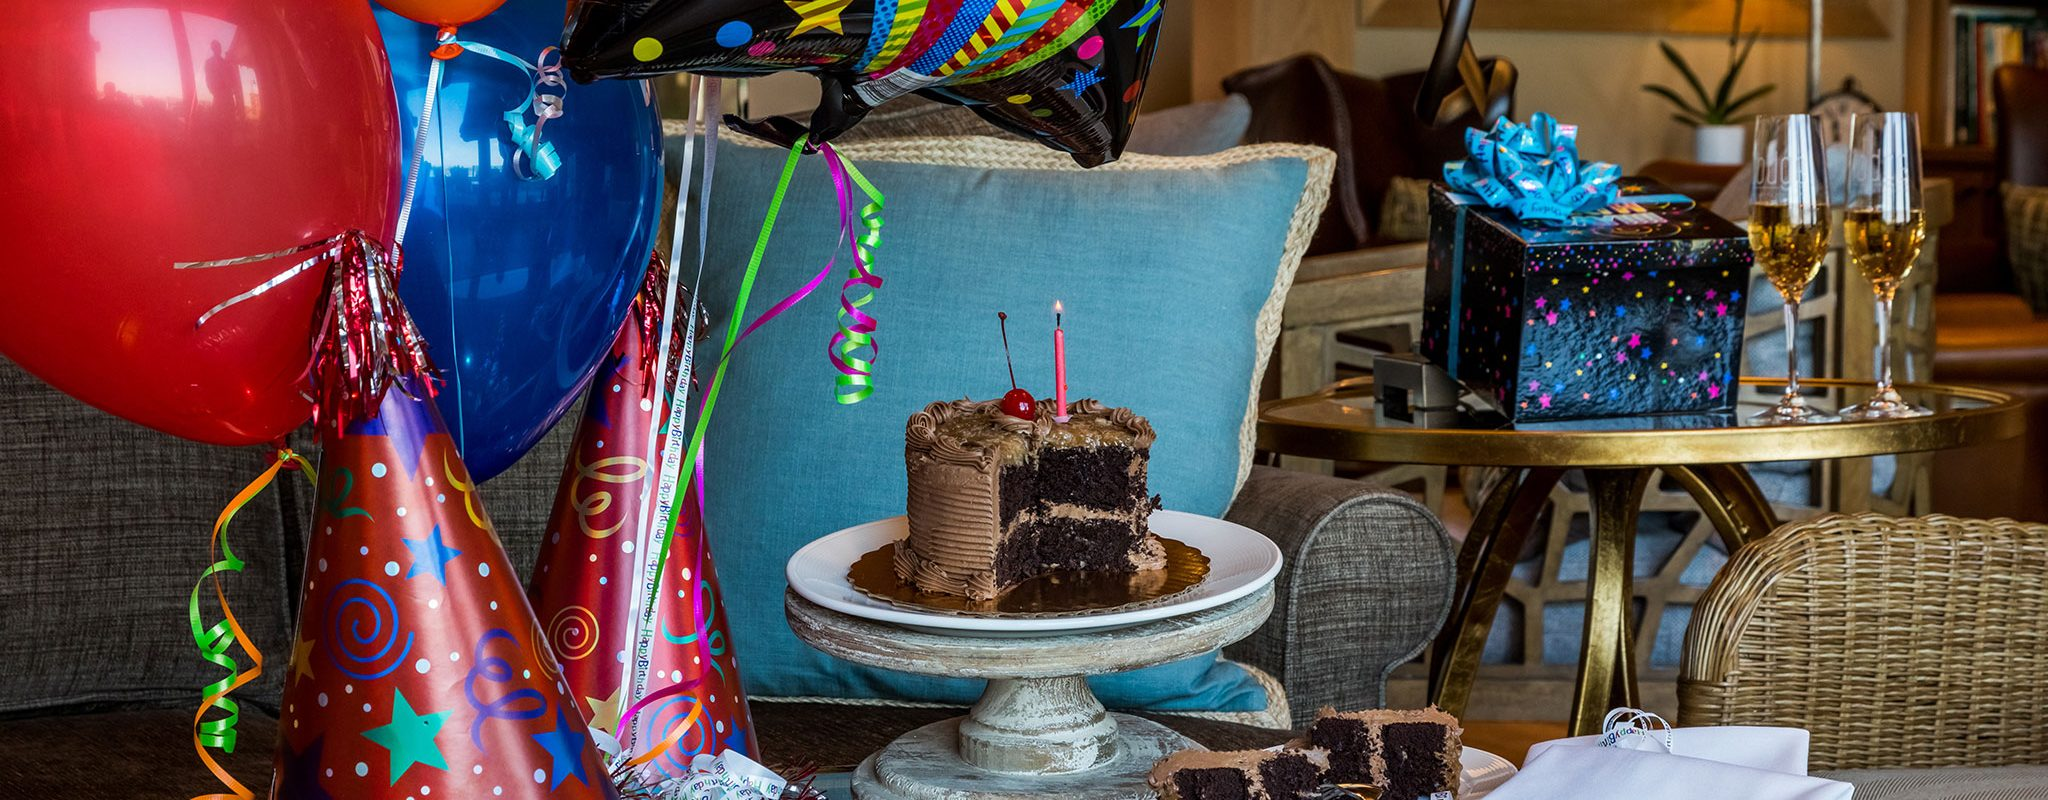 Celebrate Your Birthday In Richland Washington At Our Beautiful Hotel